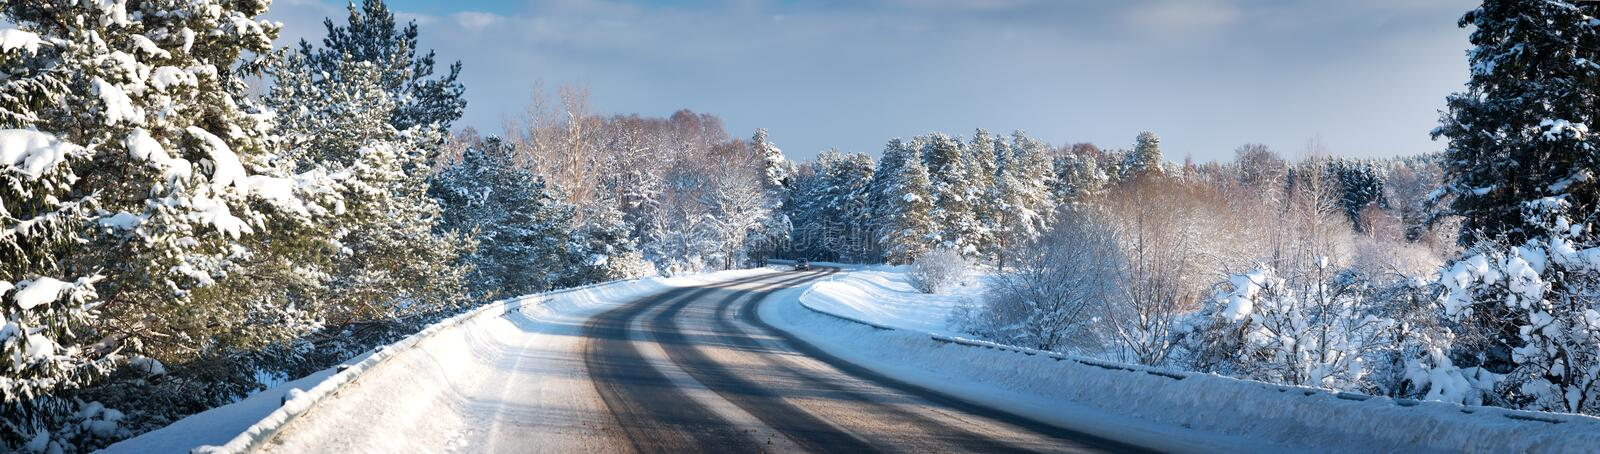 Car on winter road. Covered with snow stock images